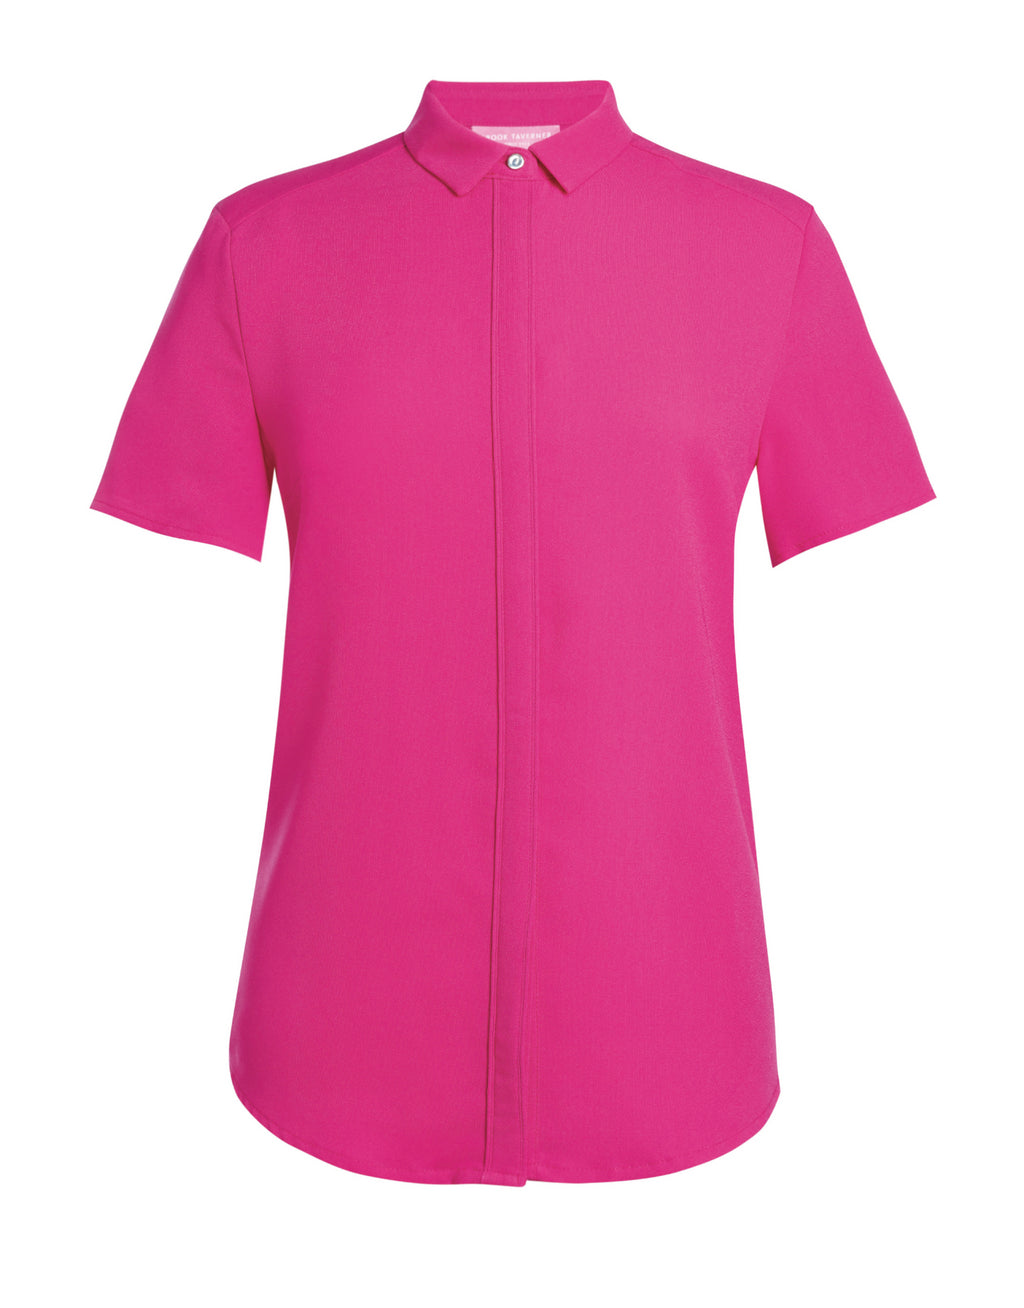 Ladies Fly Front Soft Short Sleeve Blouse (B256)